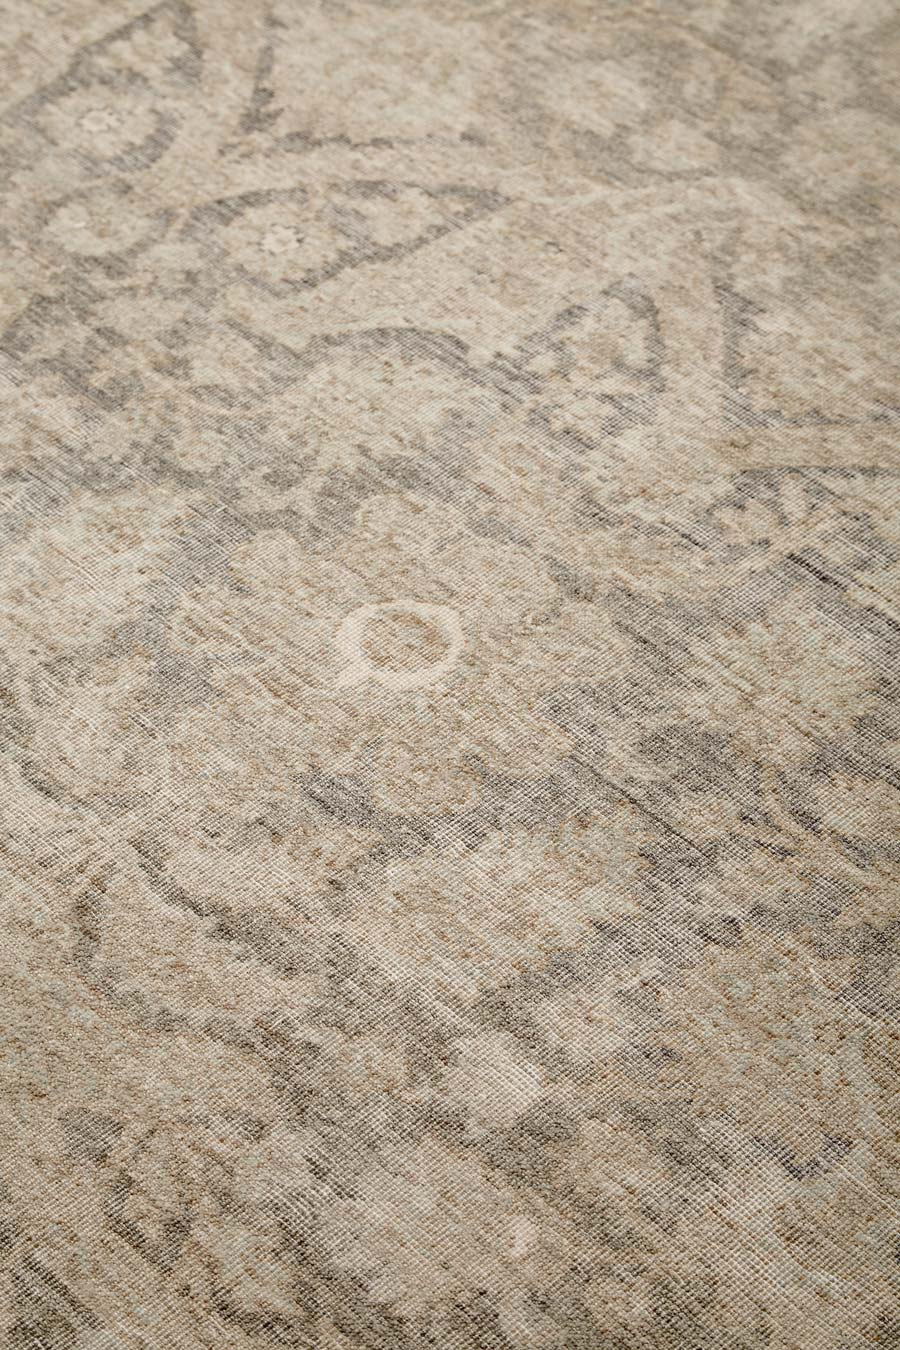 Detailed image of traditional Aphrodite rug in brown colour